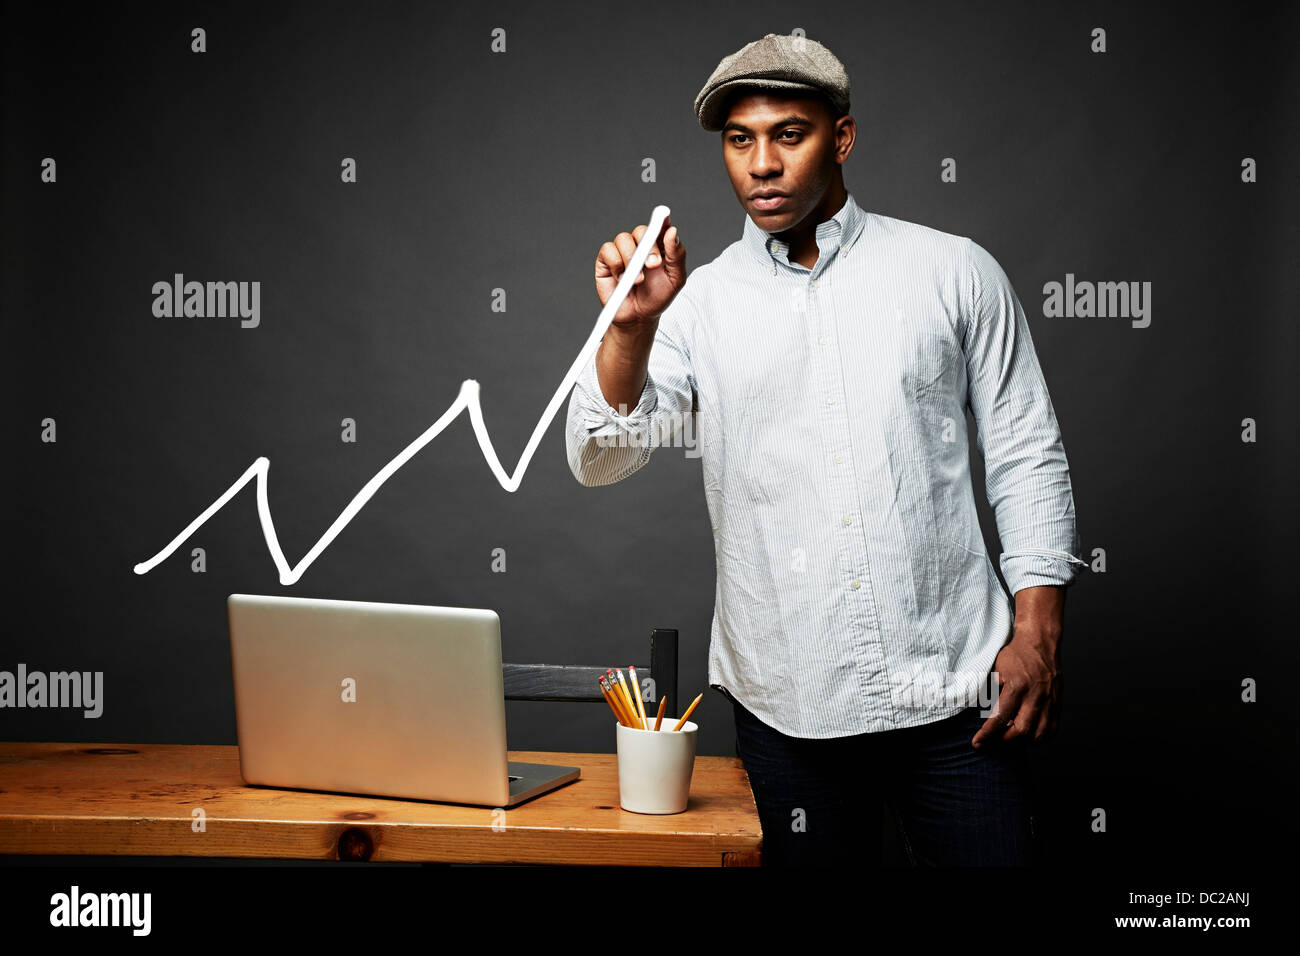 Man drawing line graph - Stock Image